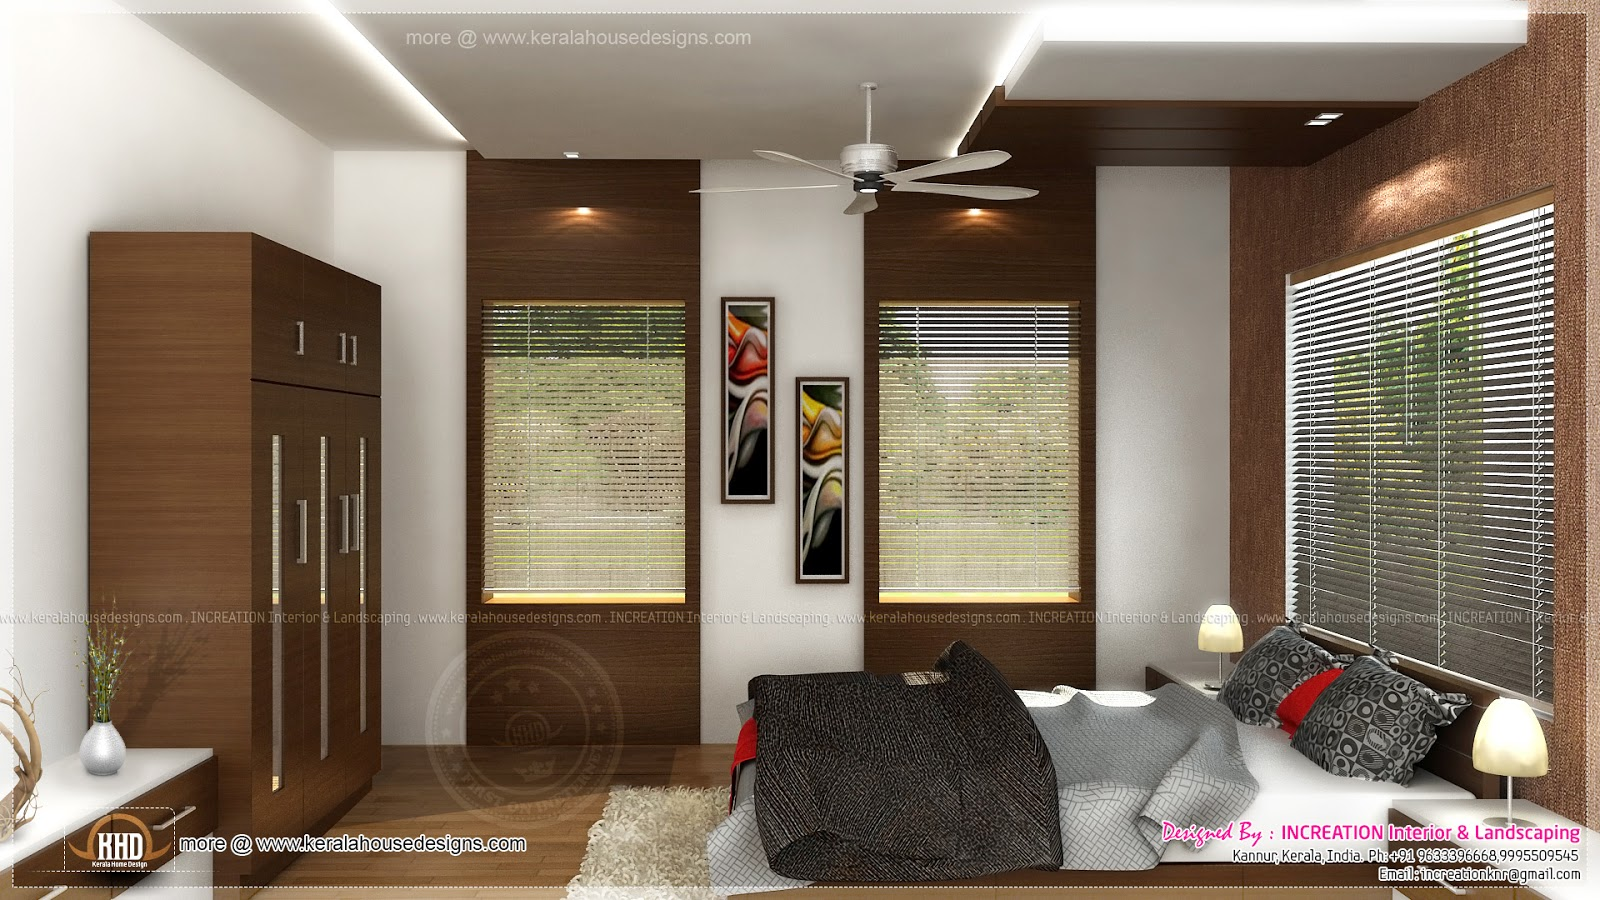 Interior designs from kannur kerala kerala home design and floor plans - Interior design homes ...